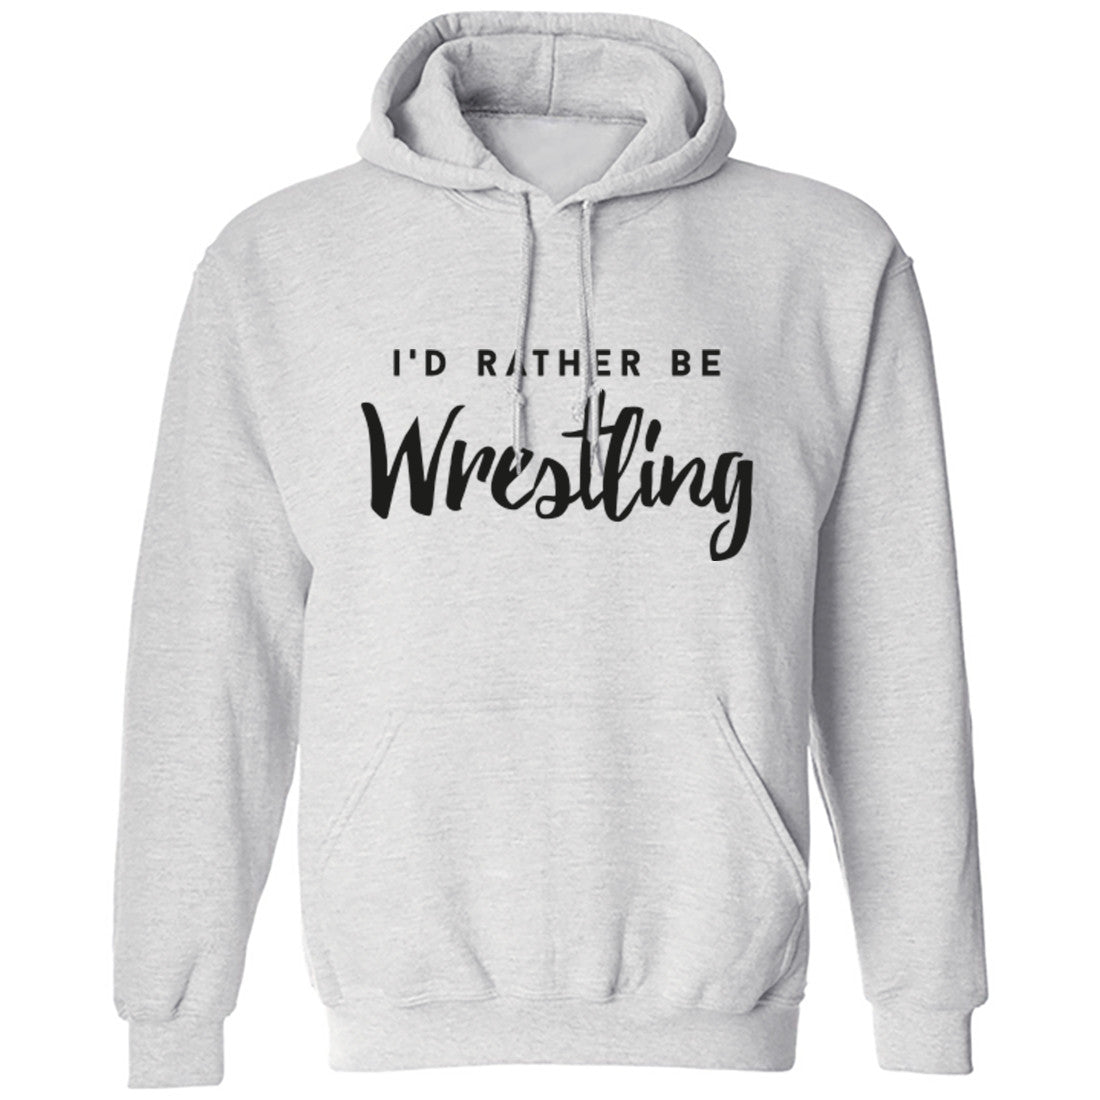 I'd Rather Be Wrestling Unisex Hoodie K0215 - Illustrated Identity Ltd.